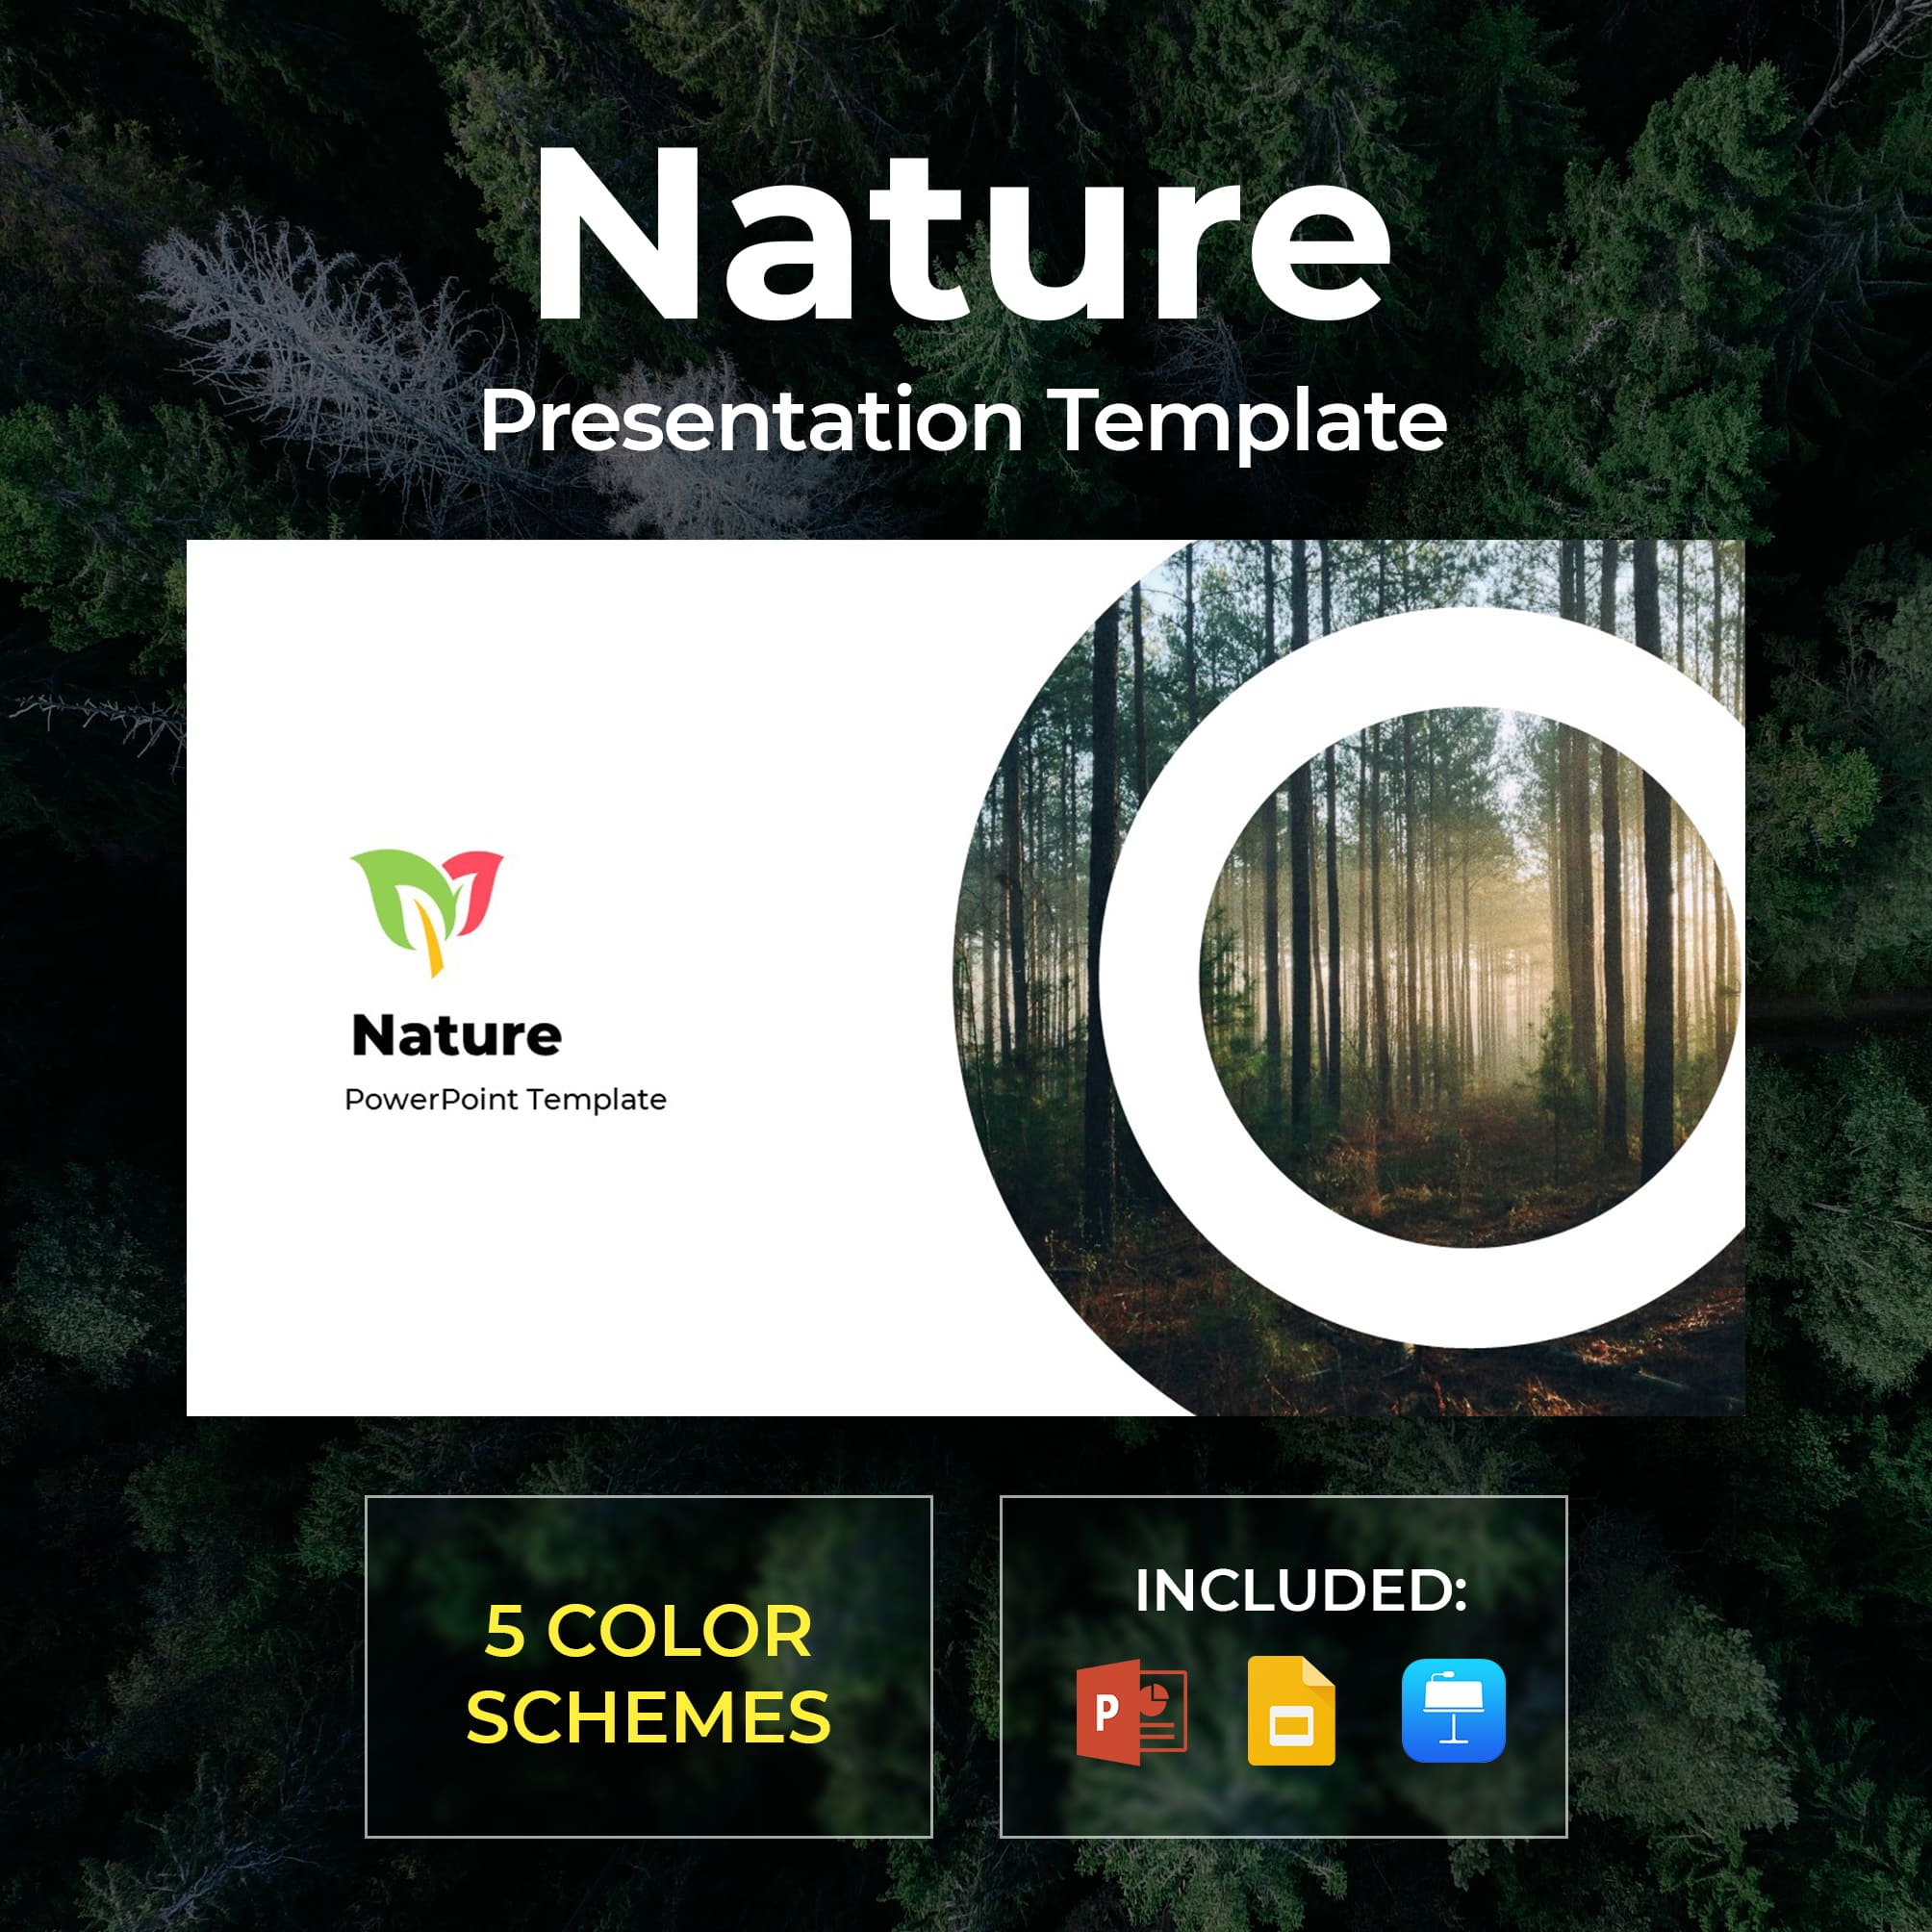 Nature Presentation Template